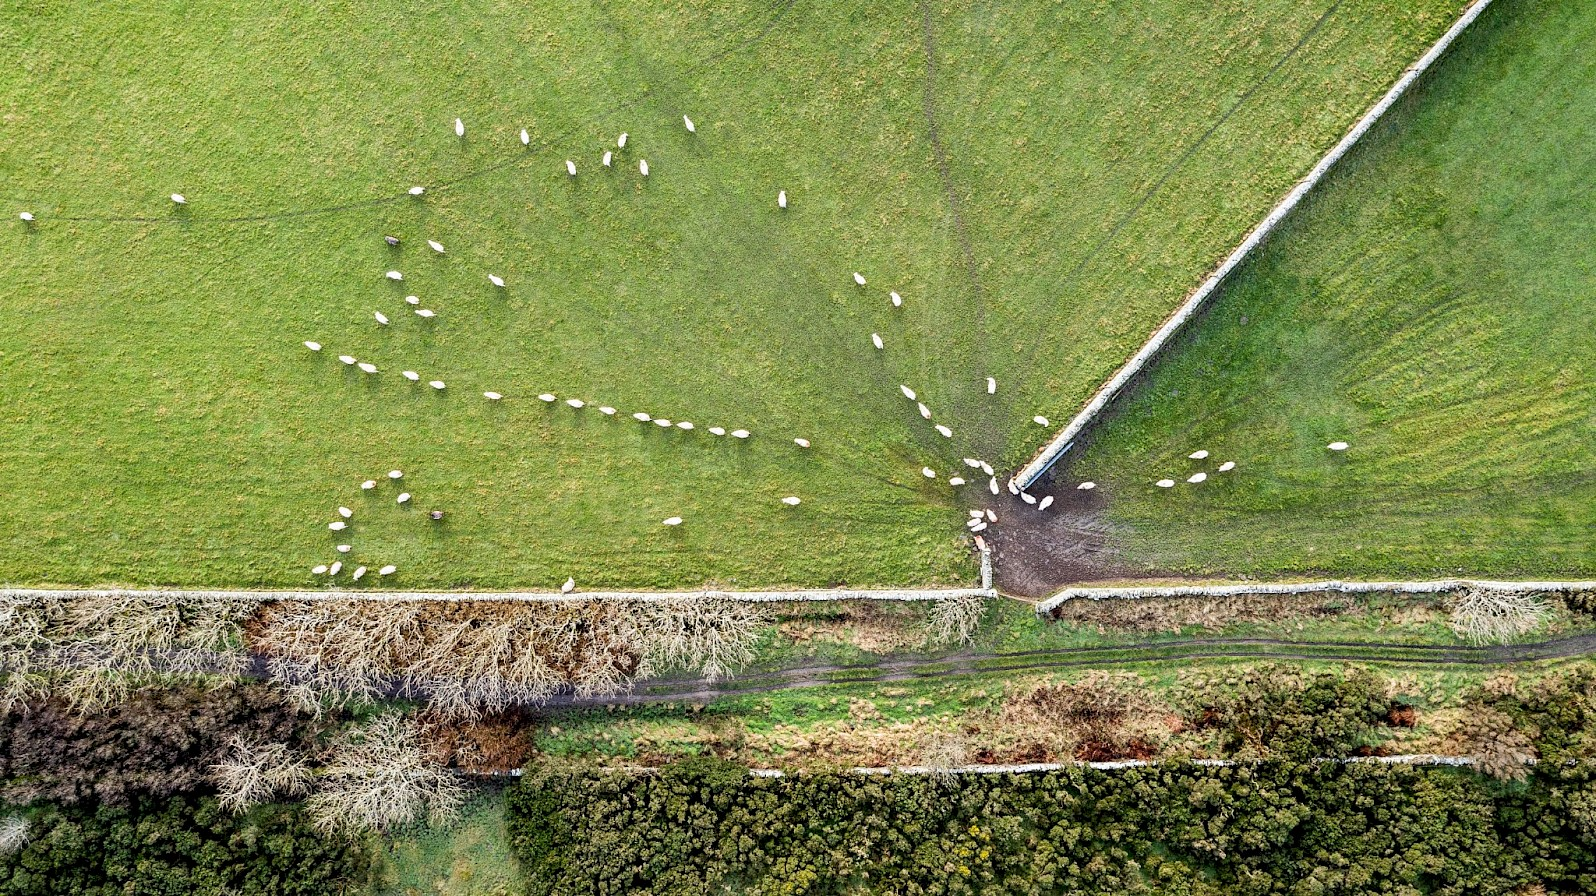 Sheep at Binscarth, Orkney - image by Andras Farkas